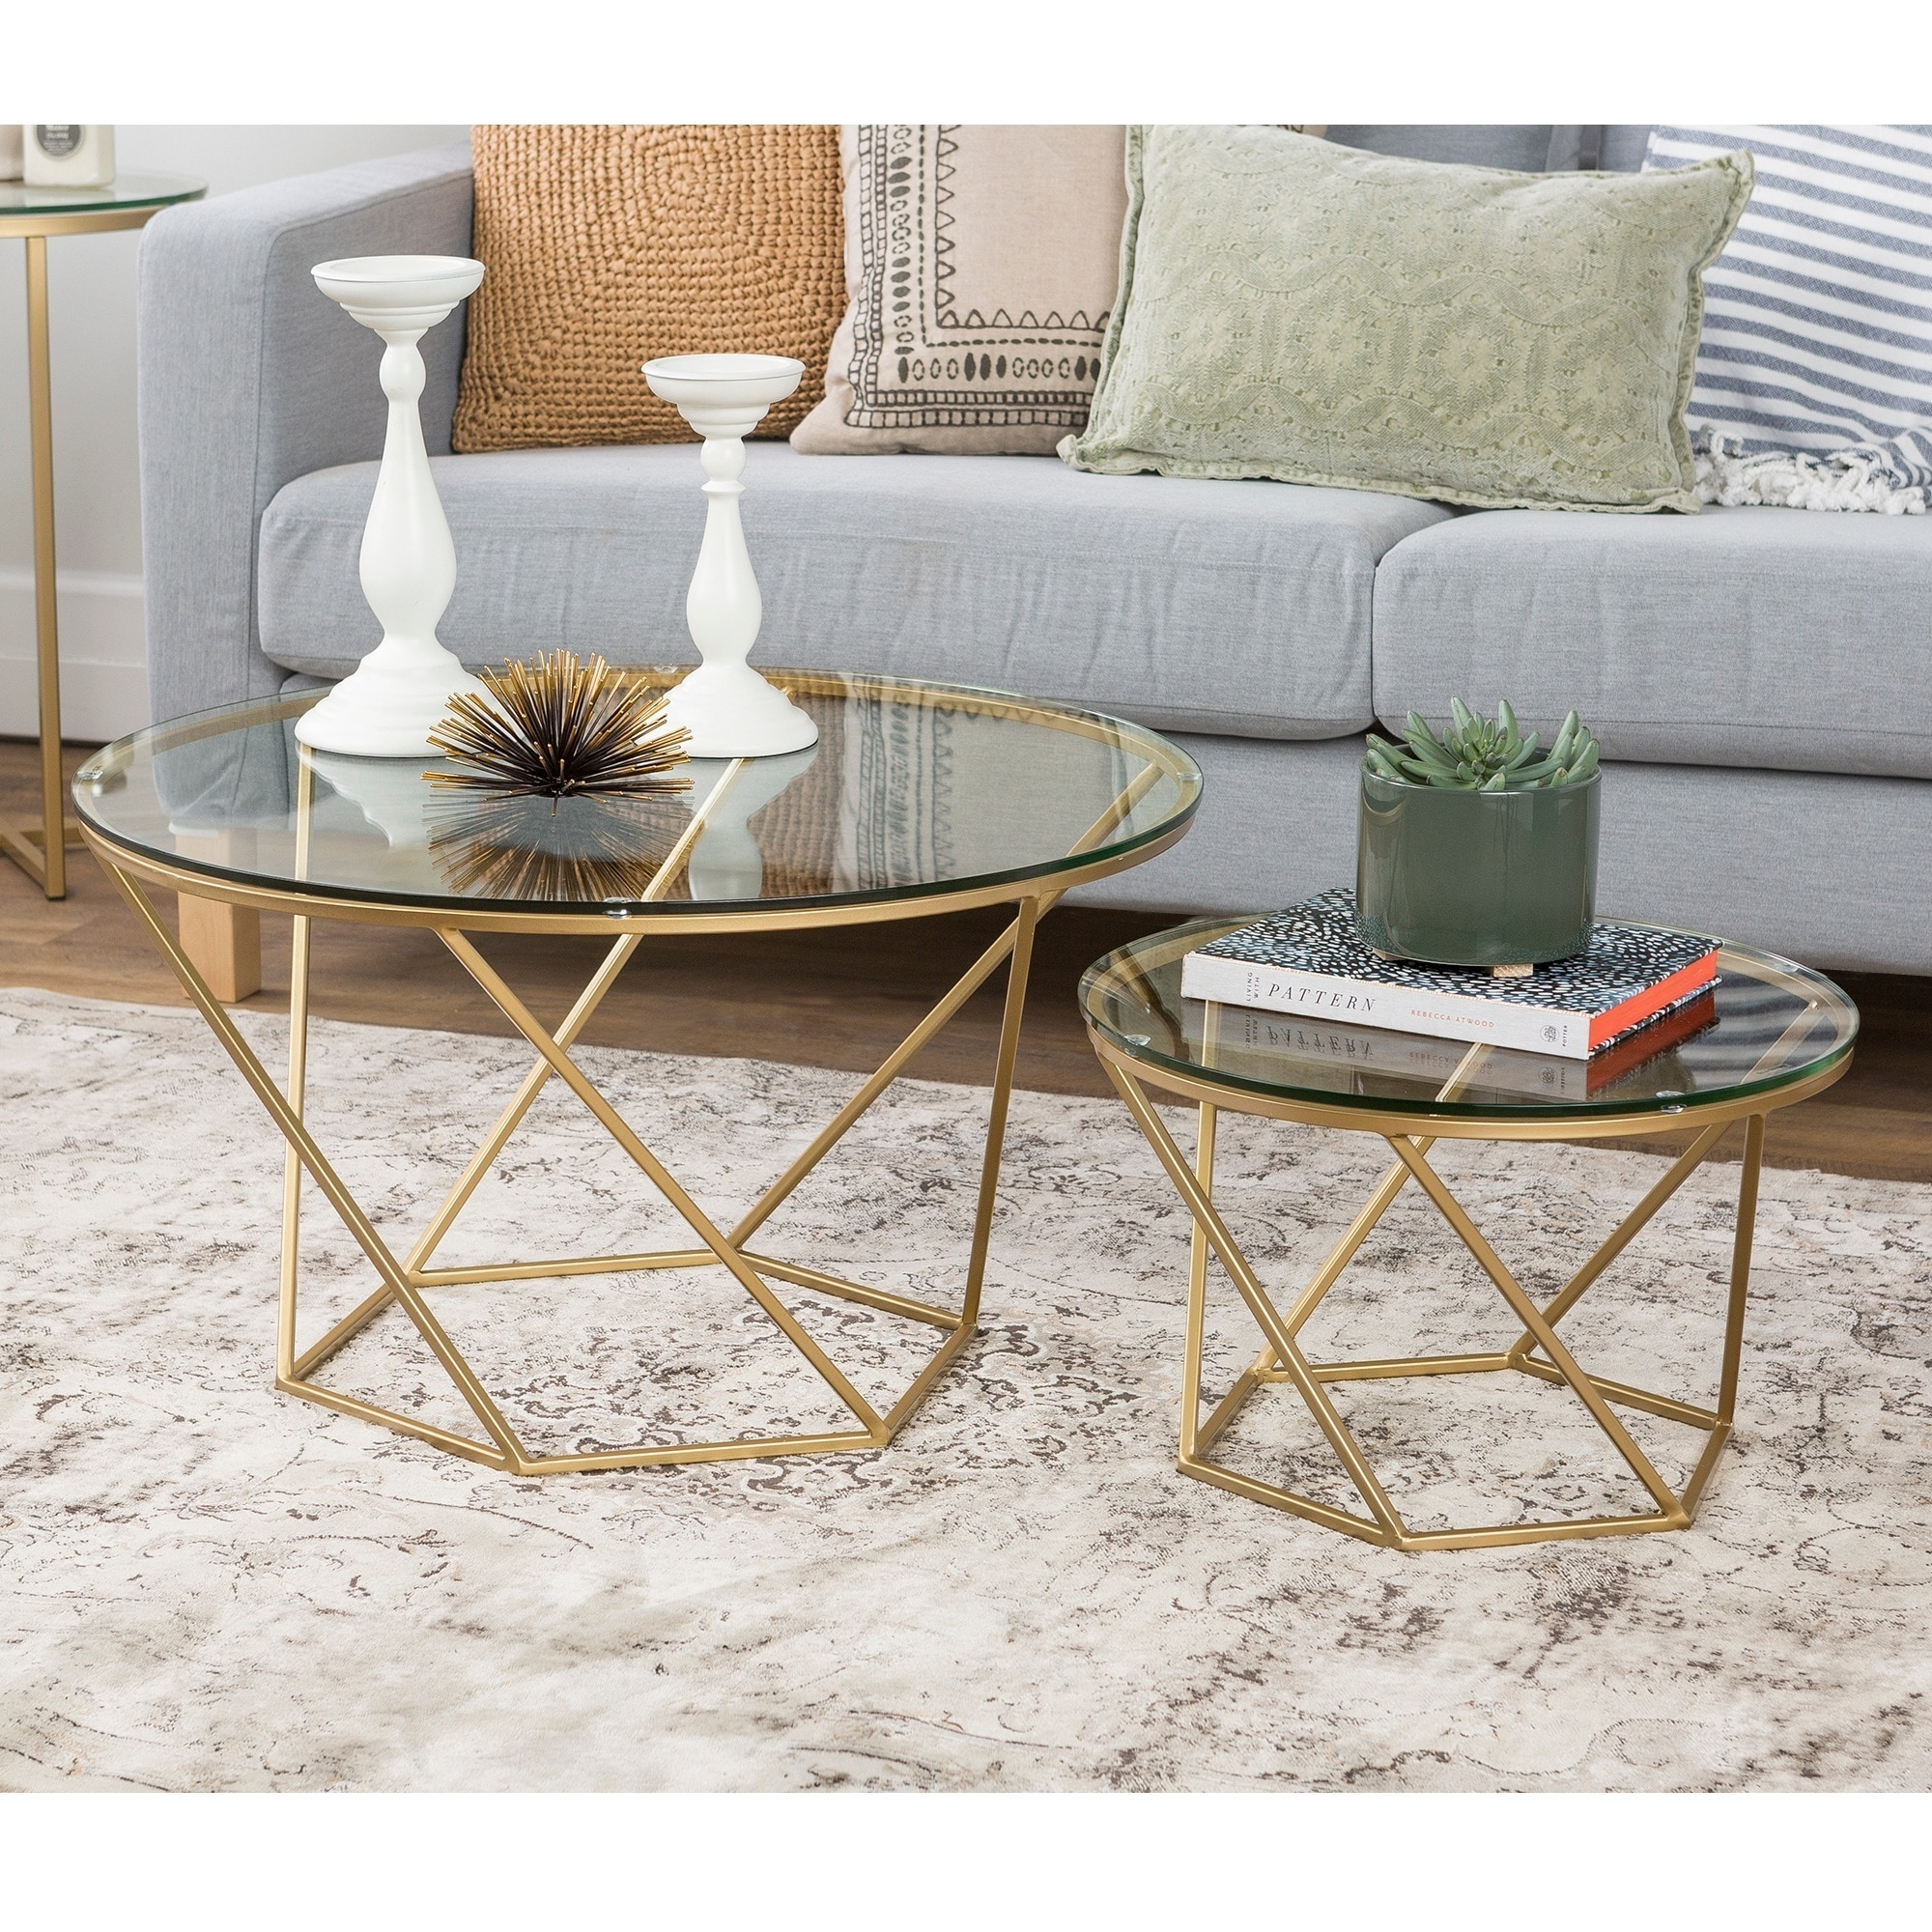 Shop silver orchid grant geometric glass nesting coffee tables on shop silver orchid grant geometric glass nesting coffee tables on sale free shipping today overstock 20559232 watchthetrailerfo